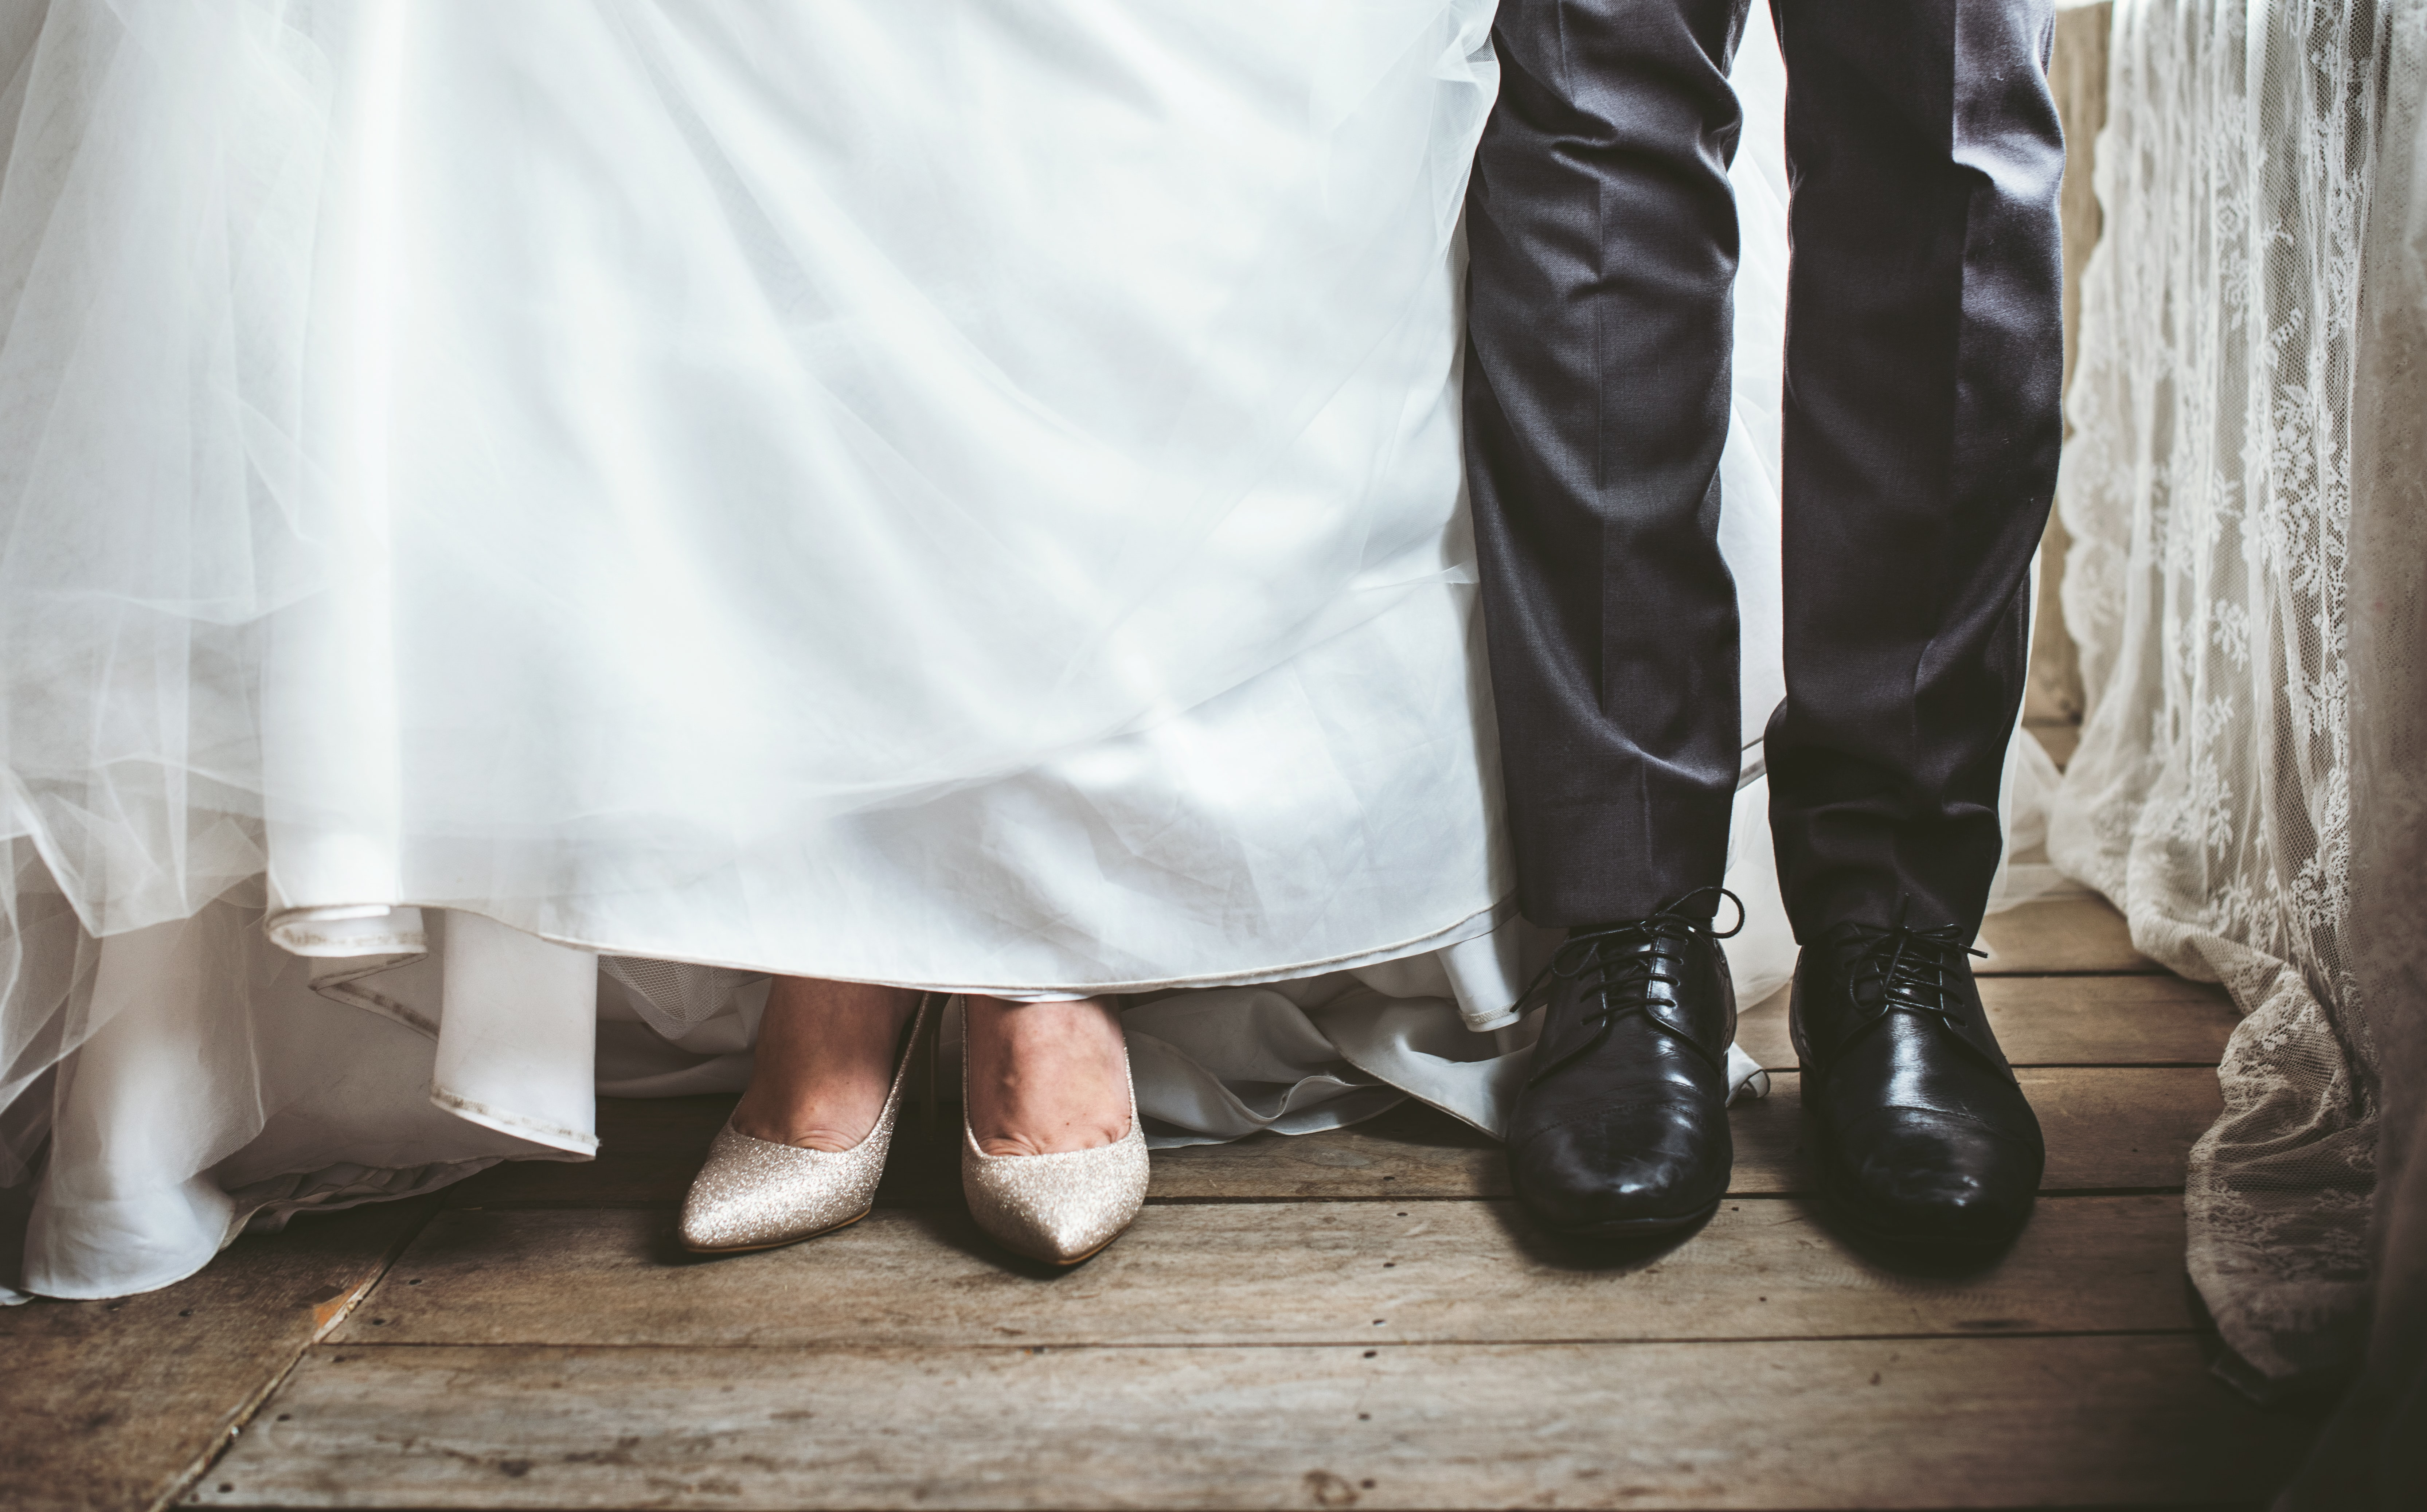 A bride and groom's feet in a white dress and black suit